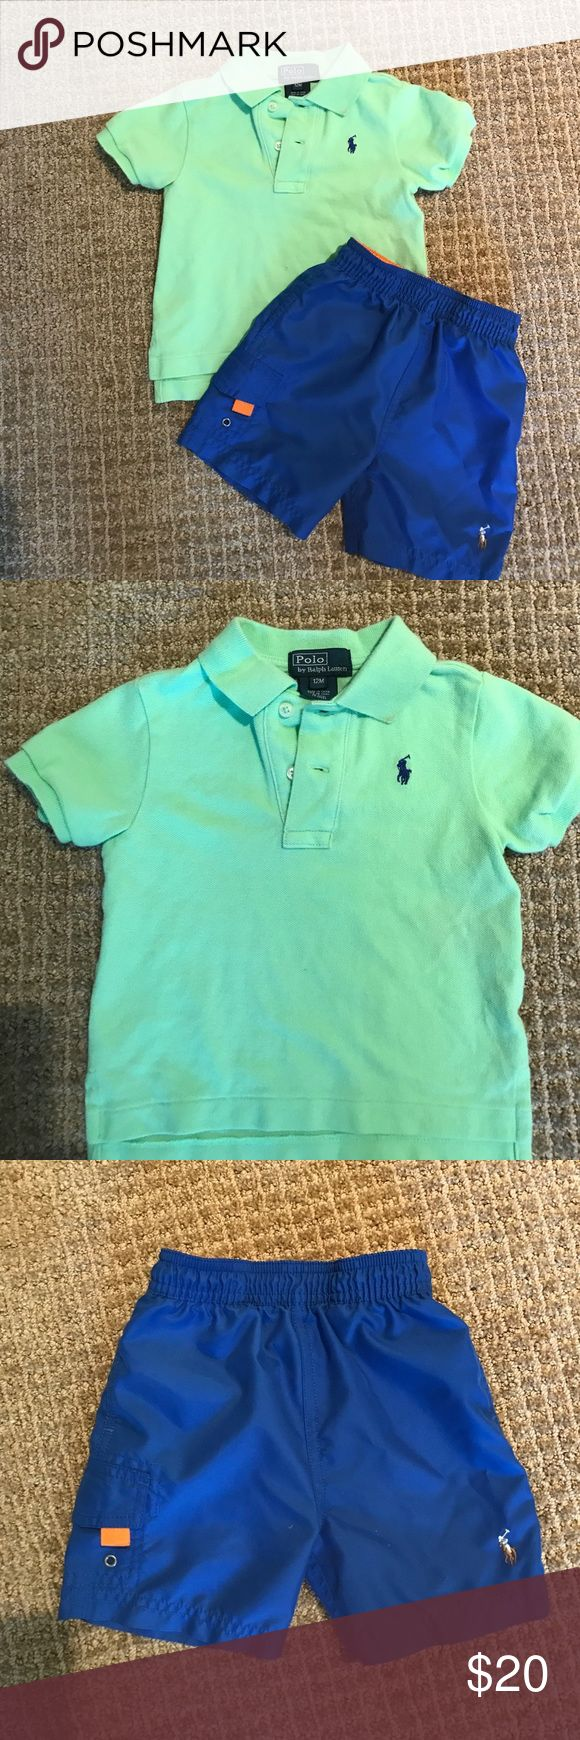 Polo Ralph Lauren Baby Polo Shirt & Polo Swimsuit Polo Ralph Lauren baby boy lime green classic polo shirt with royal blue logo (12 mo)  and Royal Blue Swimsuit (9 mo). Excellent Condition super cute Polo by Ralph Lauren Shirts & Tops